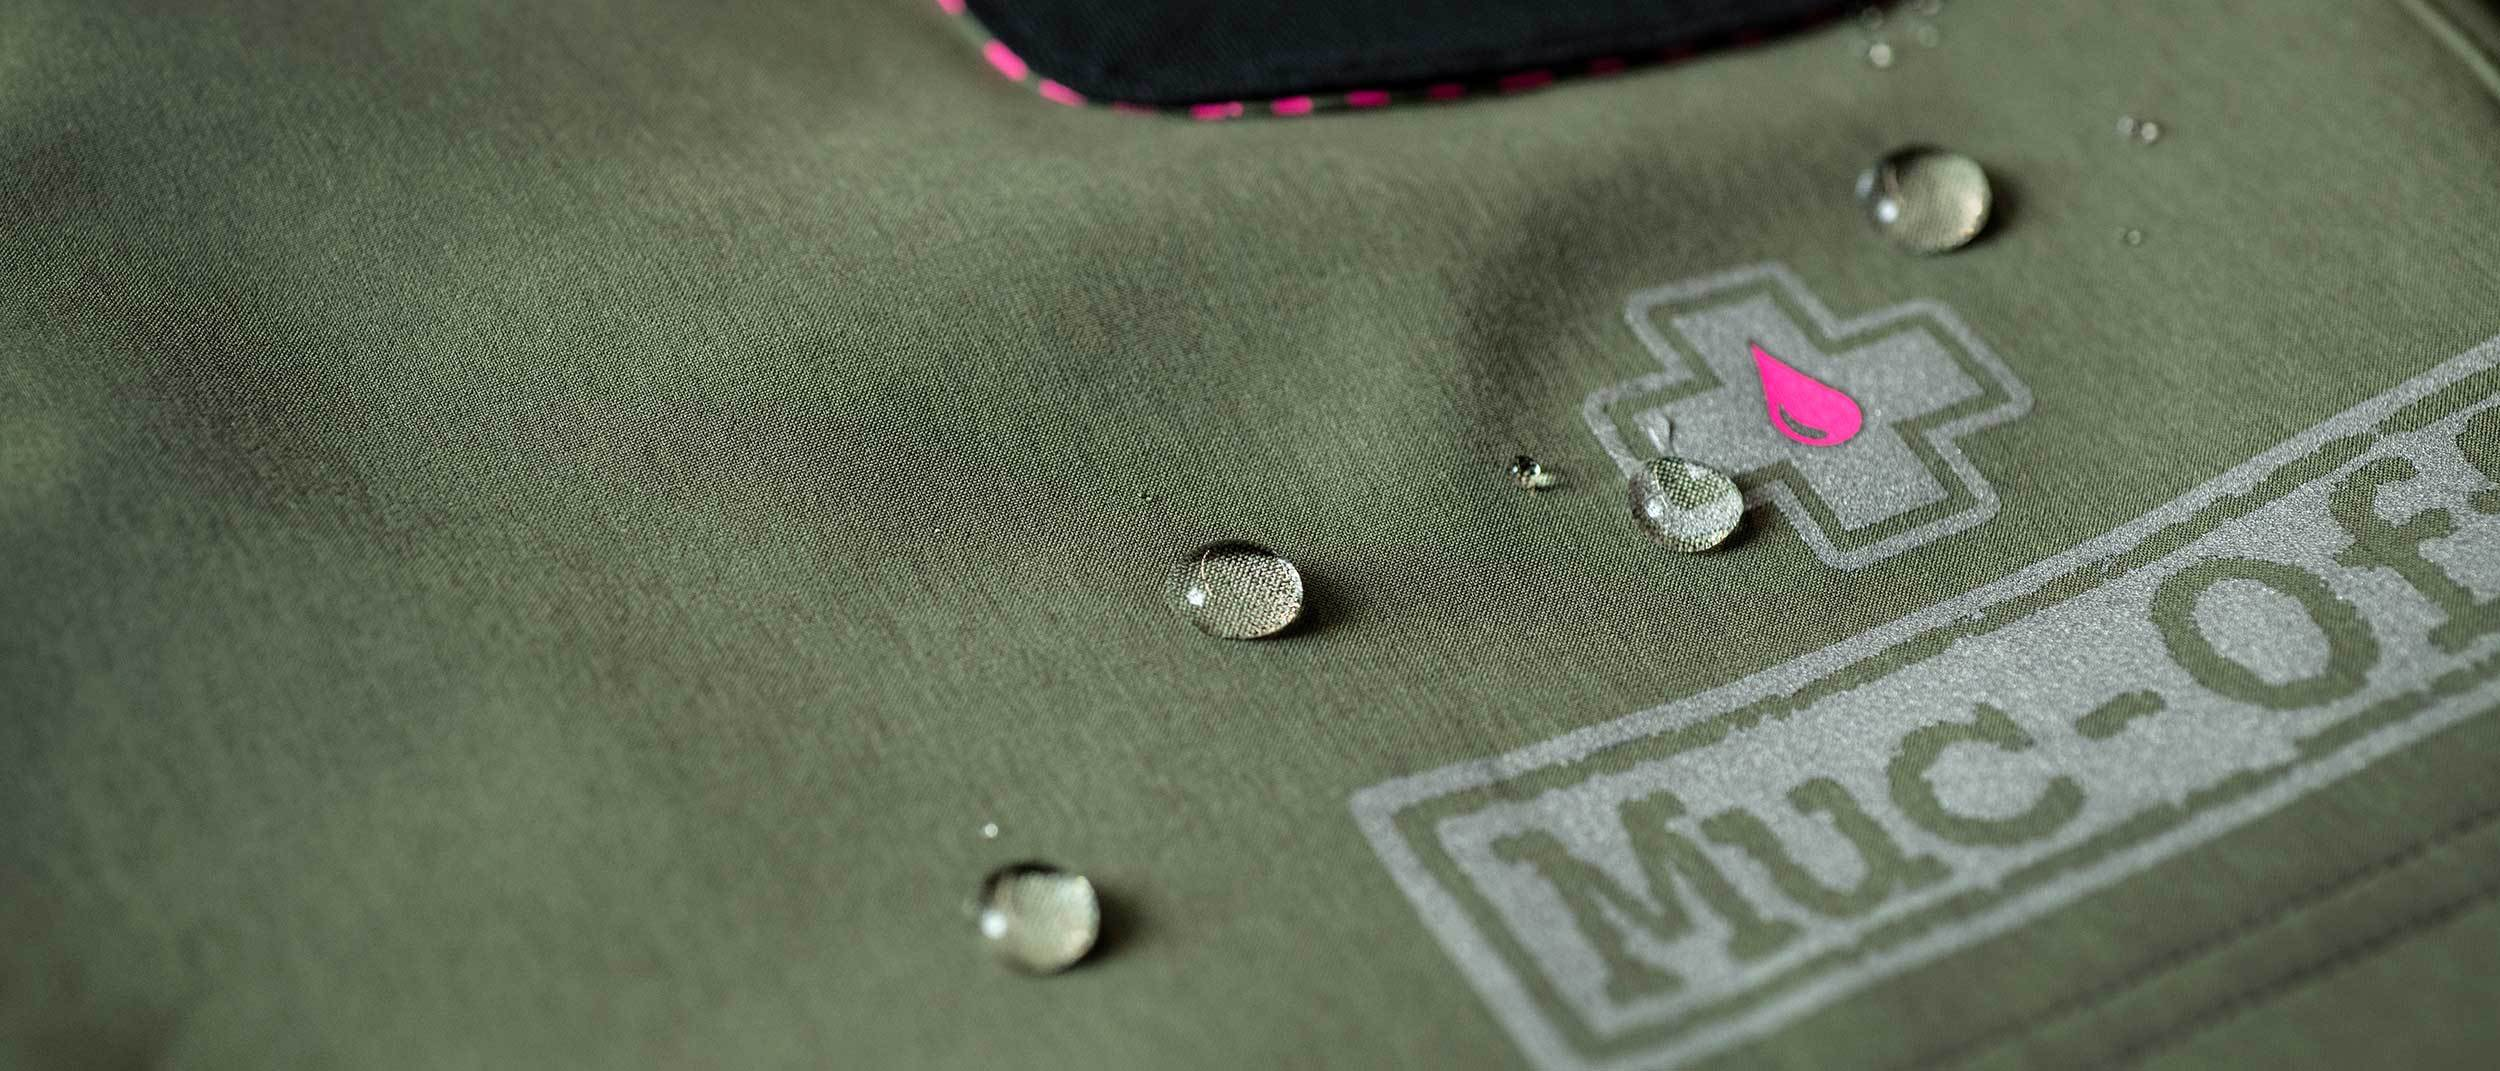 Water droplets over muc-off logo